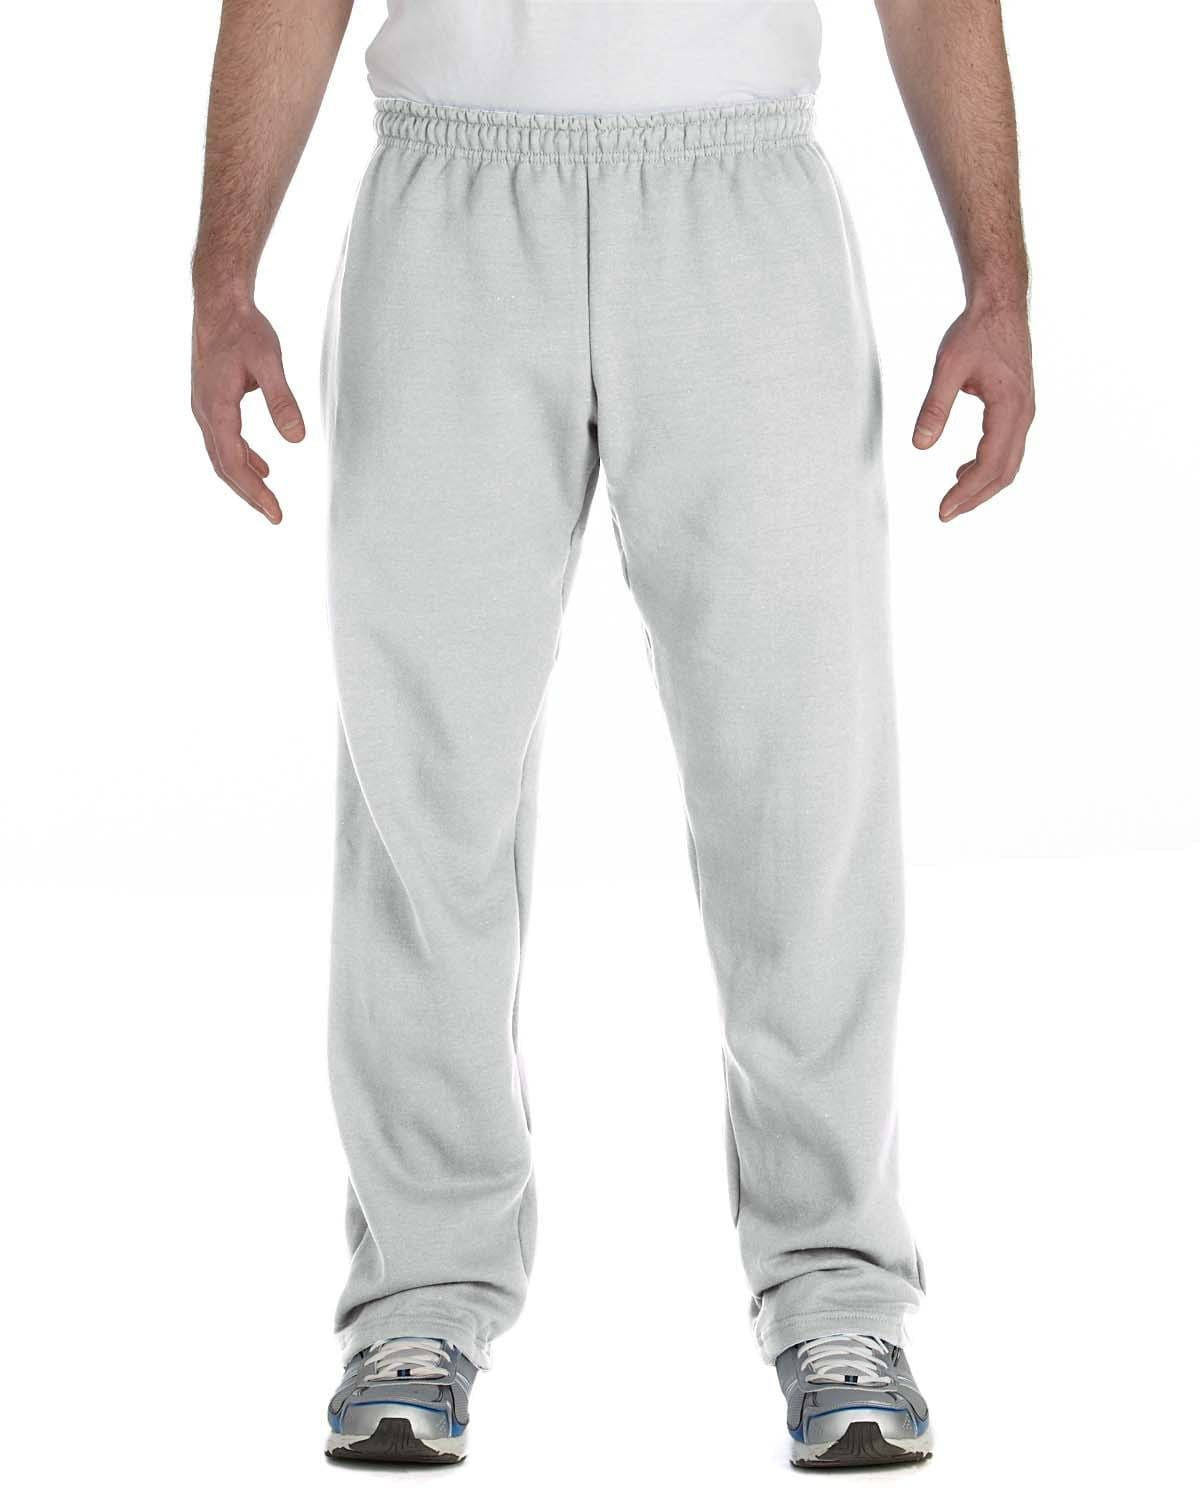 g184-adult-heavy-blend-adult-8-oz-50-50-open-bottom-sweatpants-5XL-ASH-Oasispromos